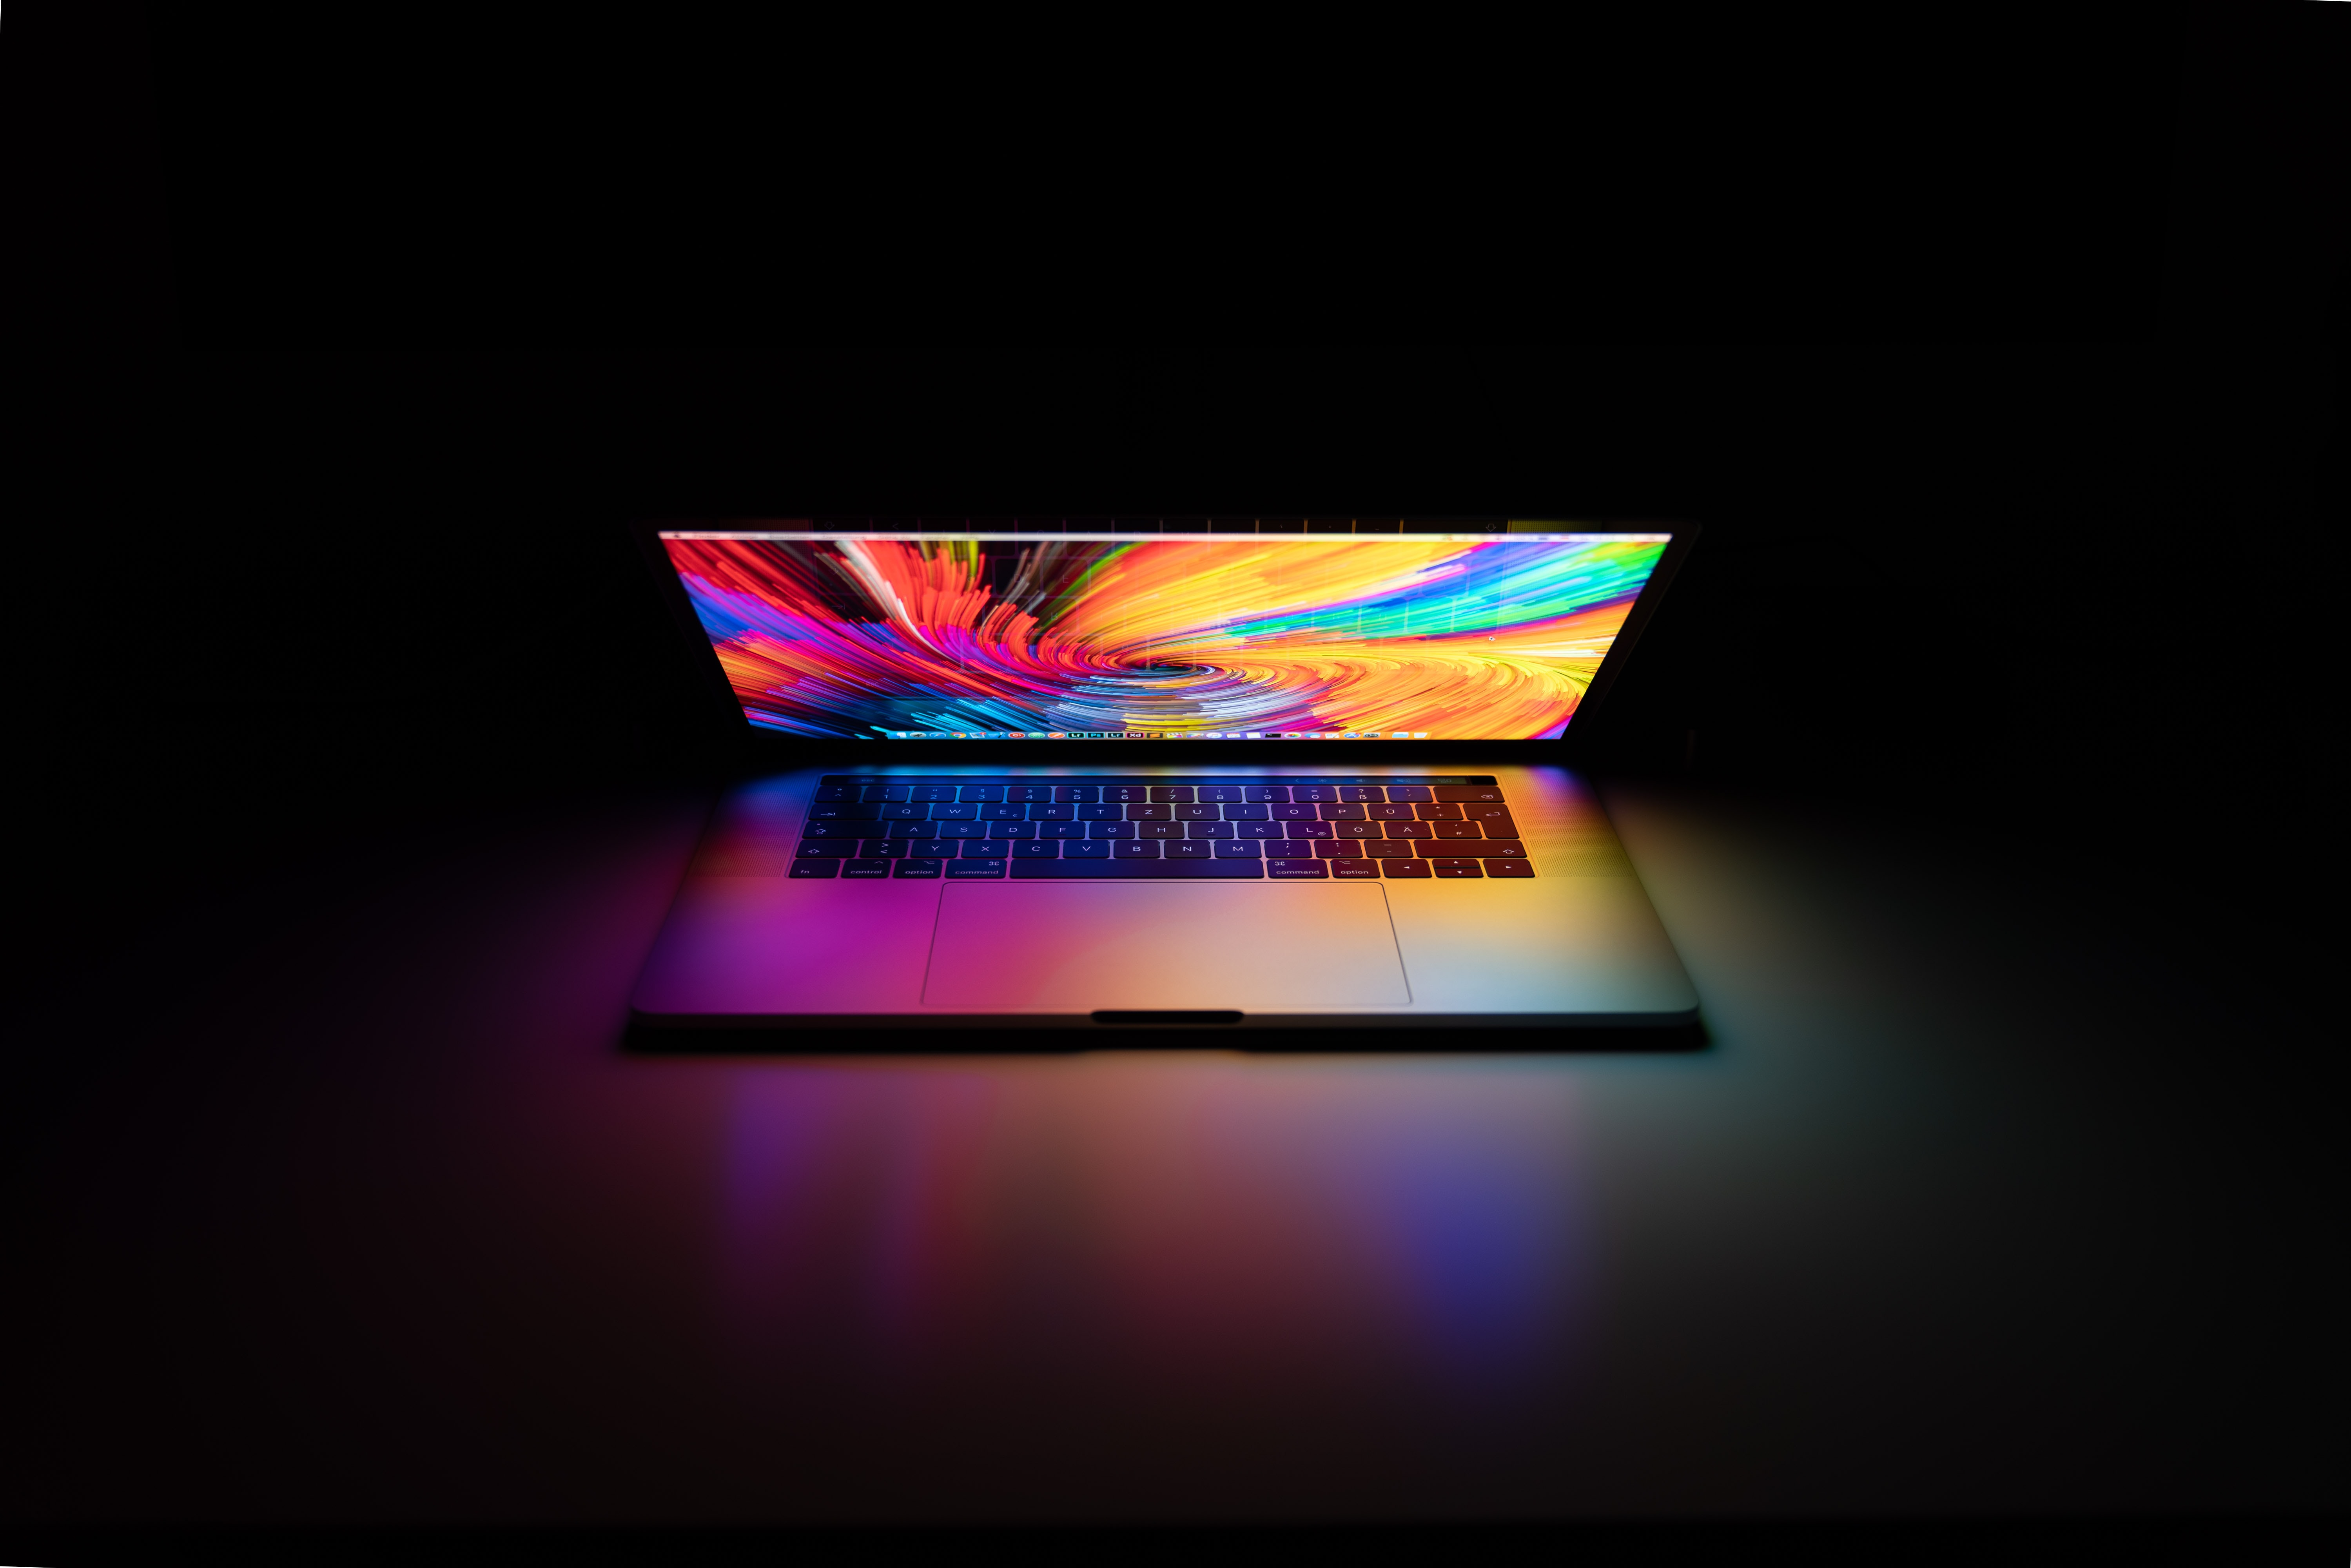 a laptop that is partly open with a colorful screen